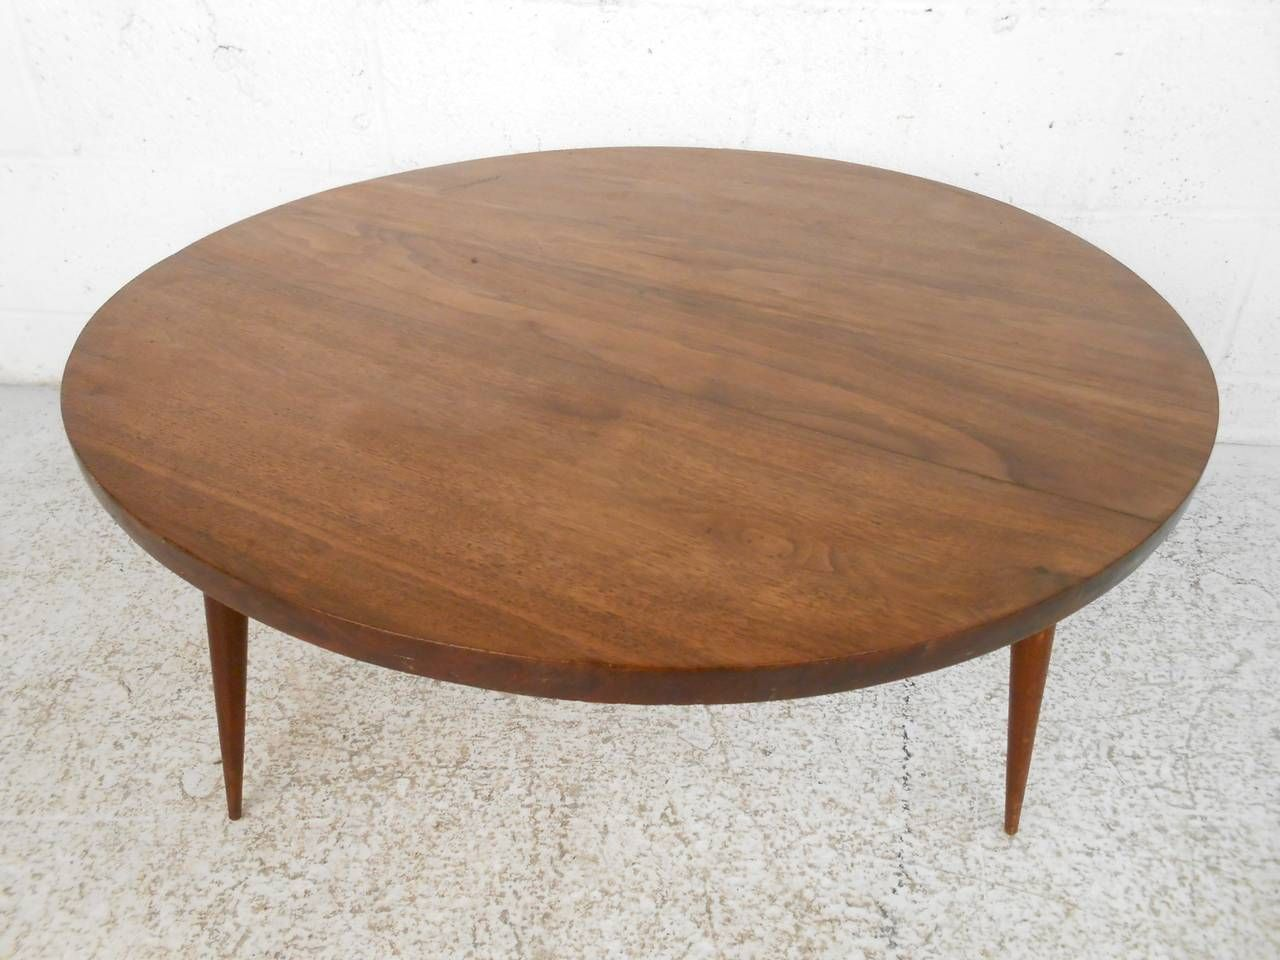 Mid century modern small round coffee table mid century mid mid century modern small round coffee table geotapseo Image collections